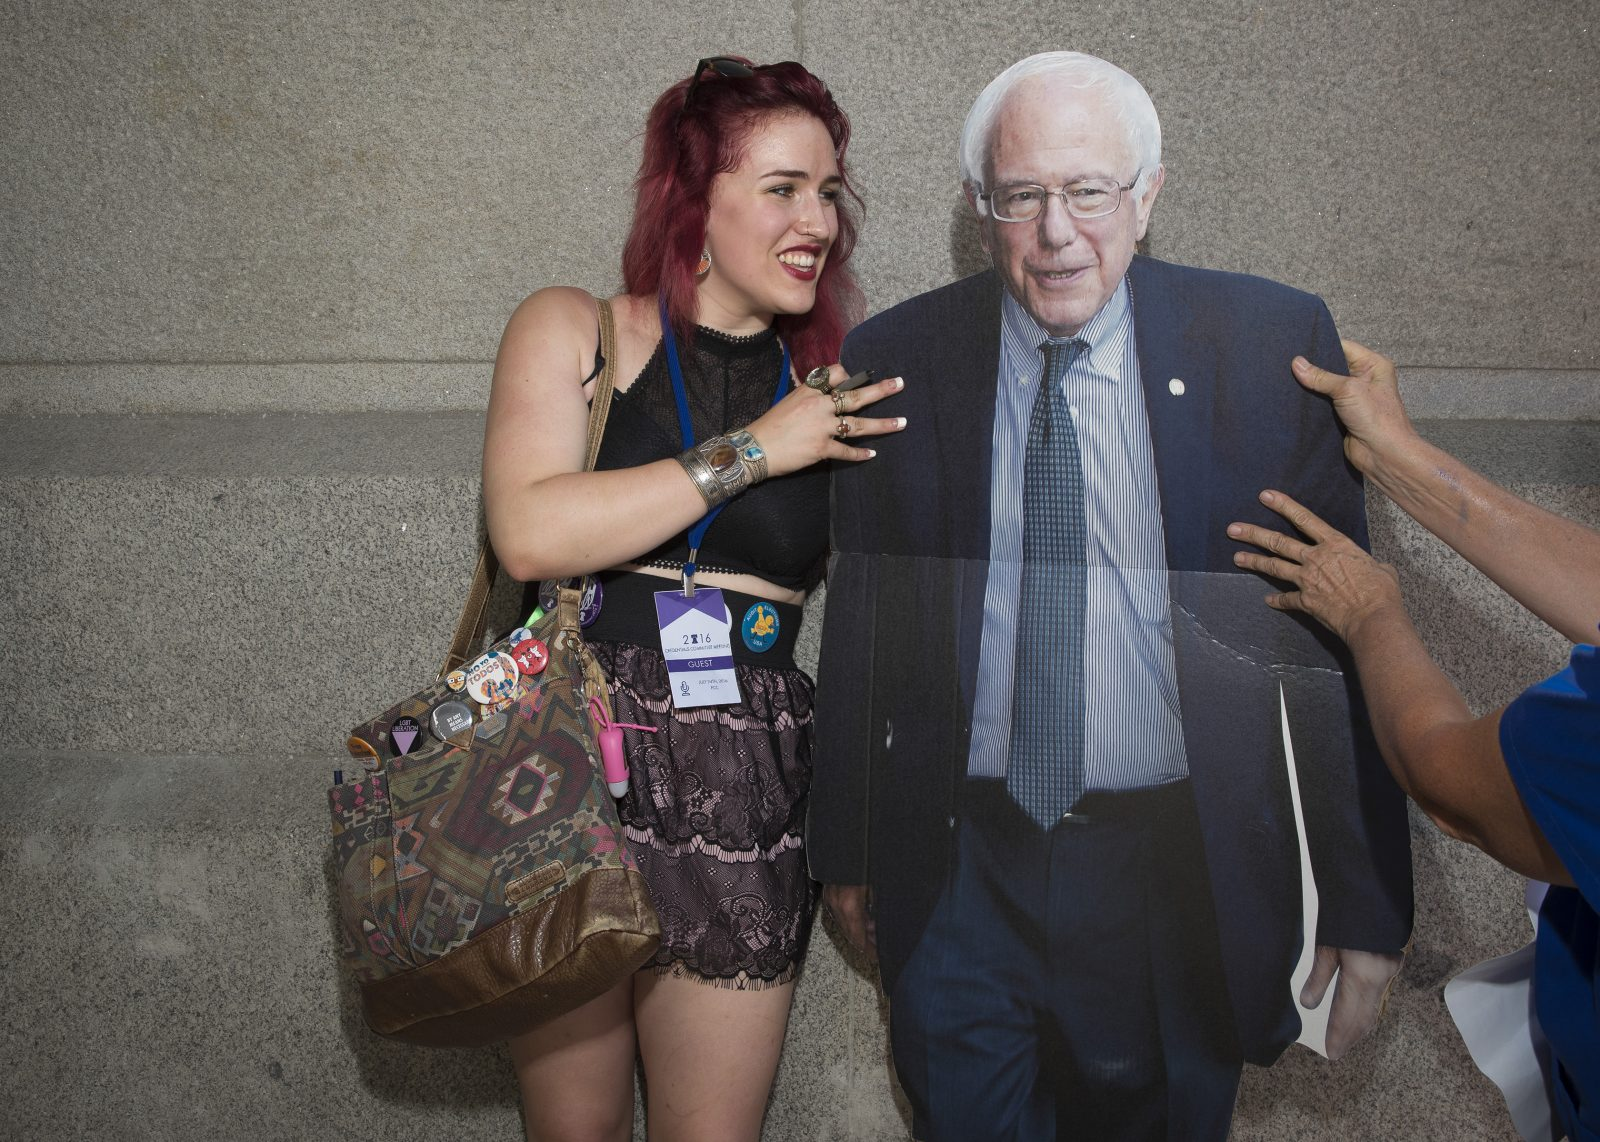 Olivia Love-Hattestad, a supporter of Bernie Sanders and an Illinois delegate, with a cutout of Sanders during a rally the day before the Democratic National Convention in downtown Philadelphia. (Stephen Crowley/The New York Times)